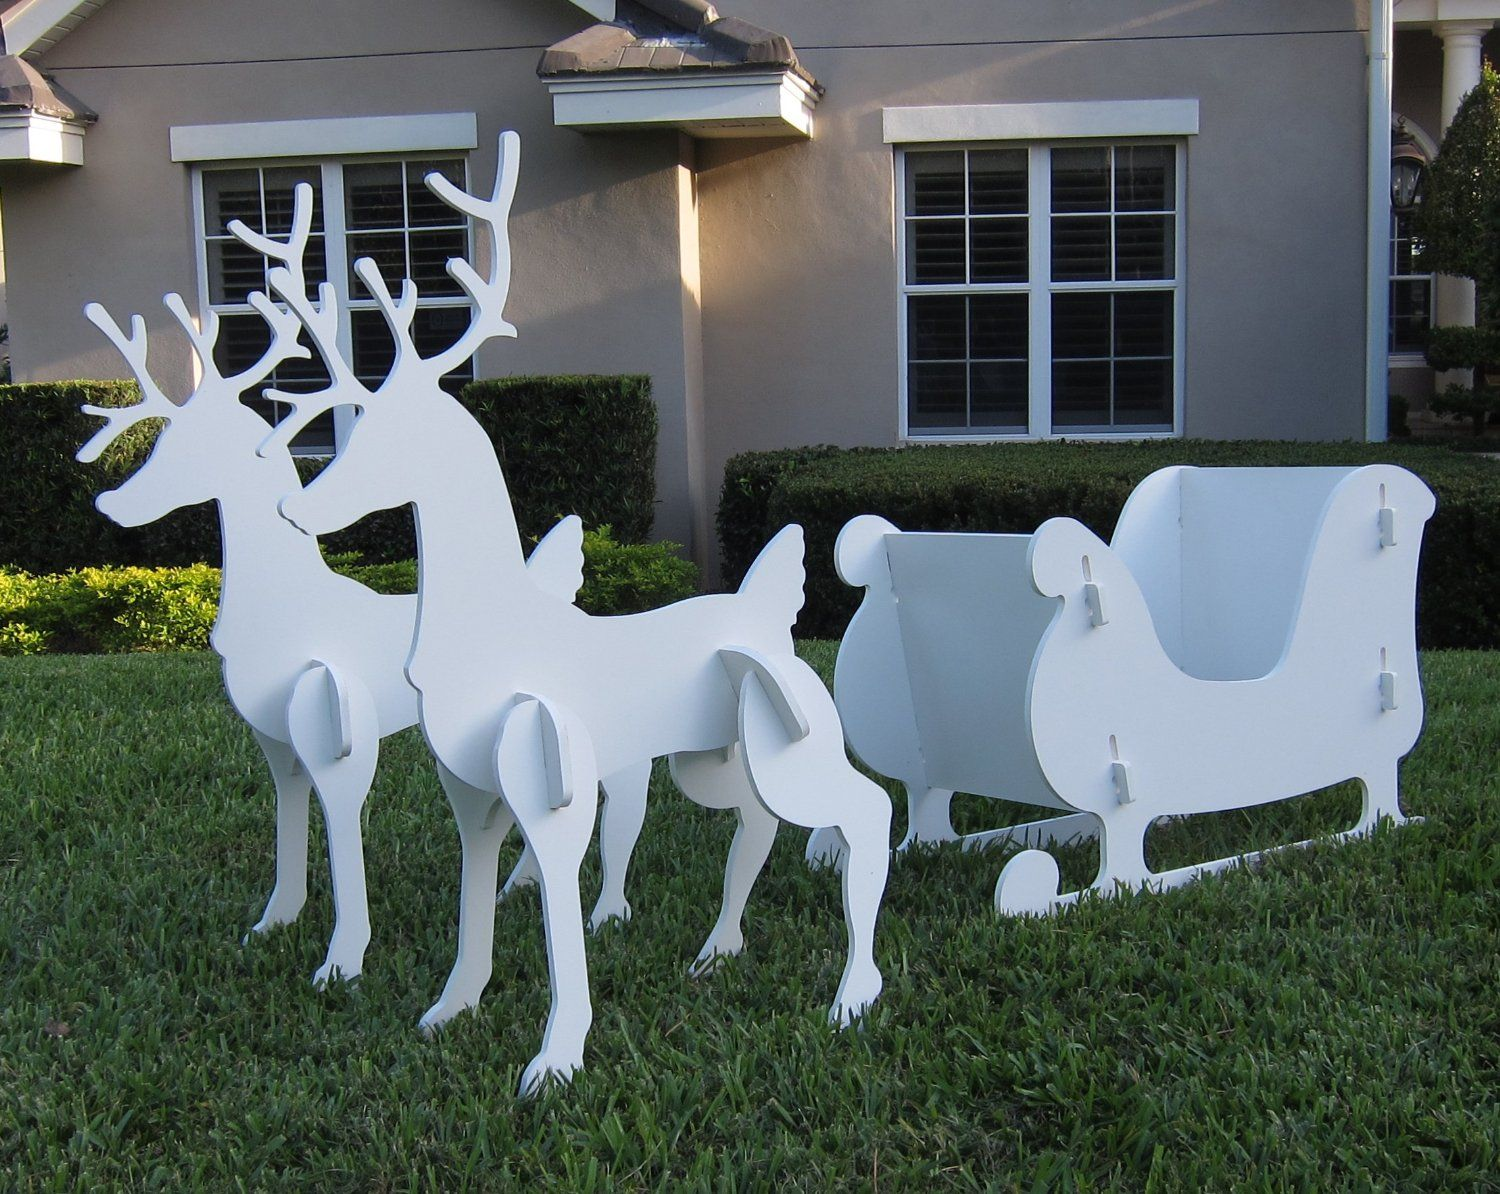 Outdoor christmas decorations for sale - Santa Sleigh Reindeer Outdoor Yard Decoration New Christmas Sale Garden Set Pvc